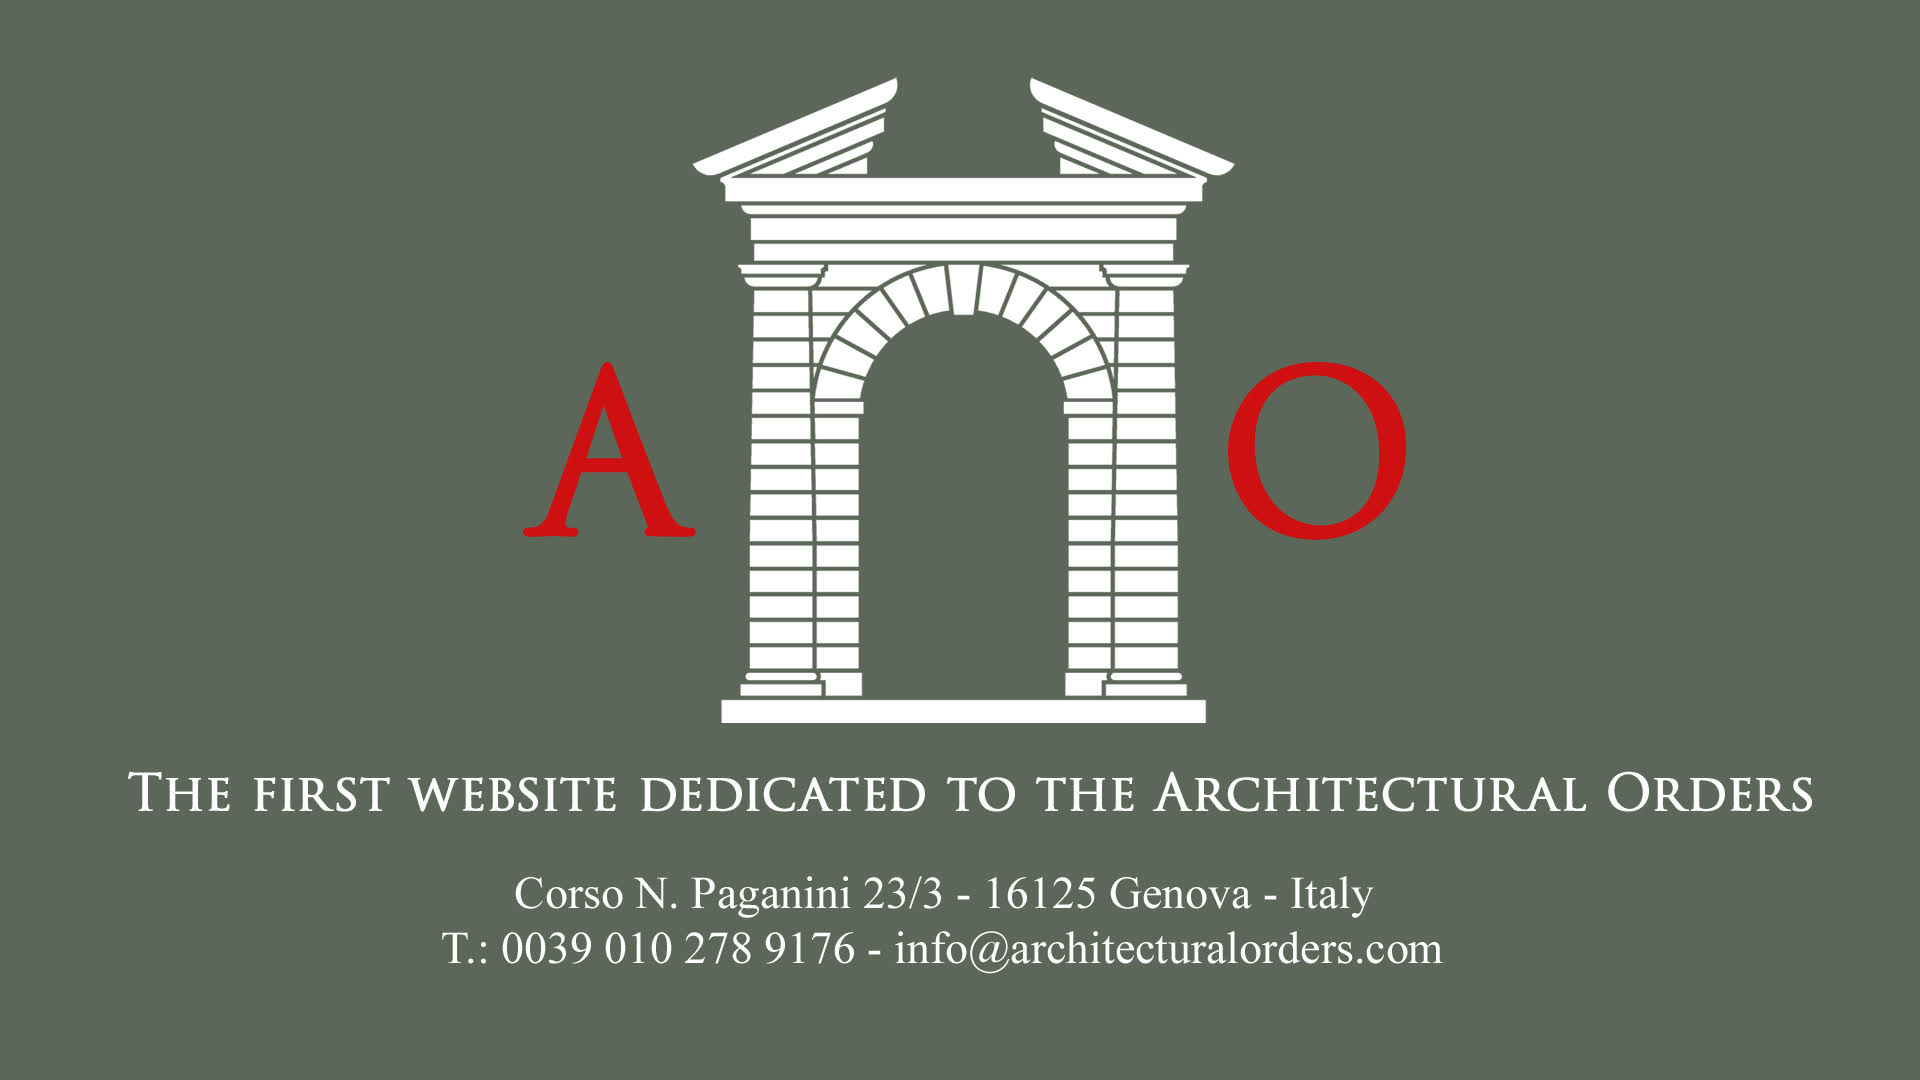 Architectural Orders